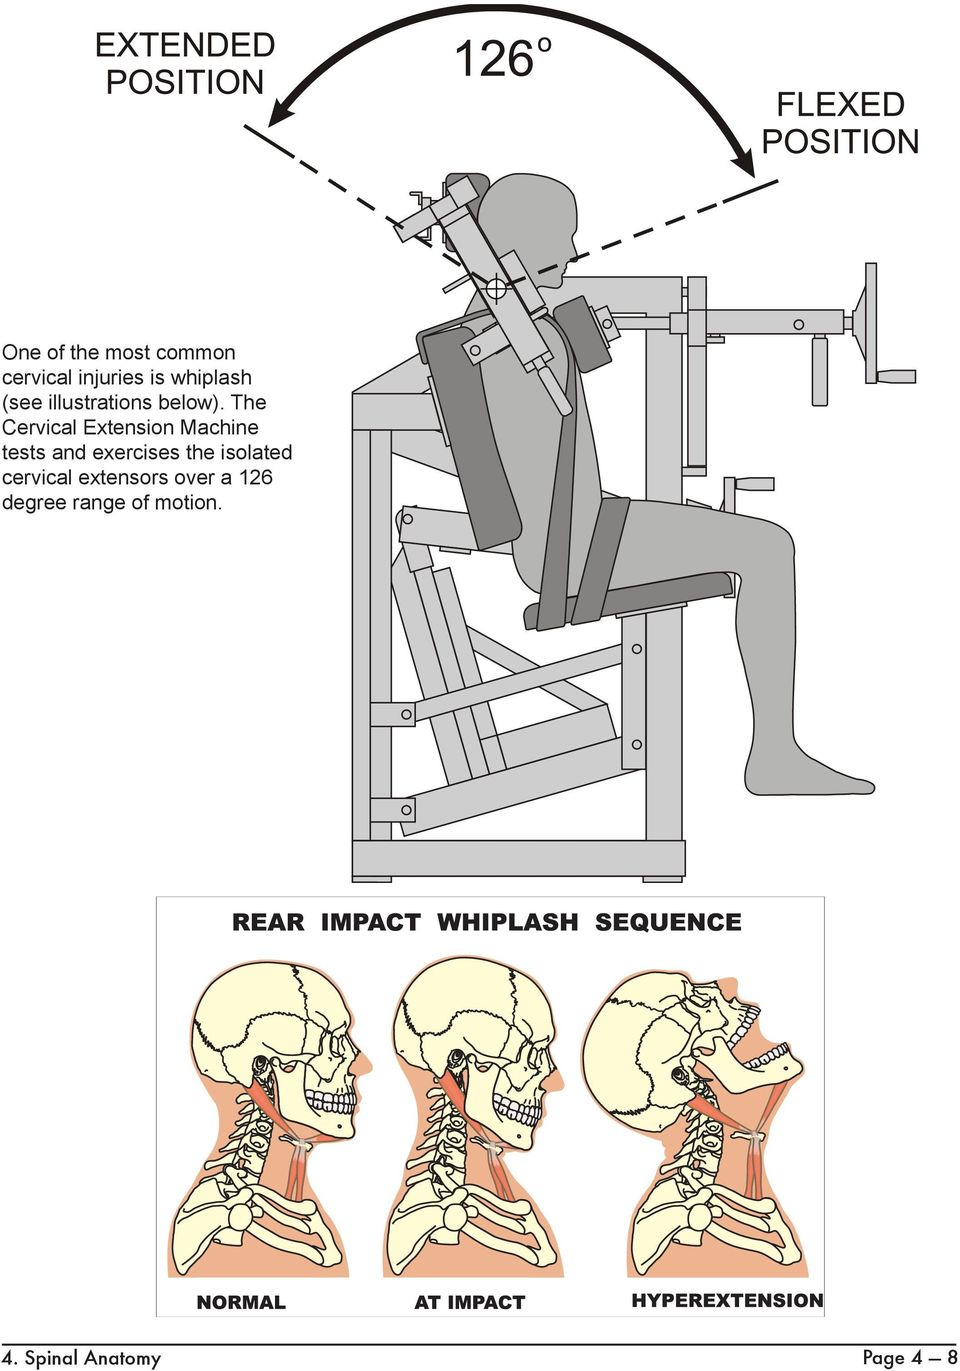 The Cervical Extension Machine tests and exercises the